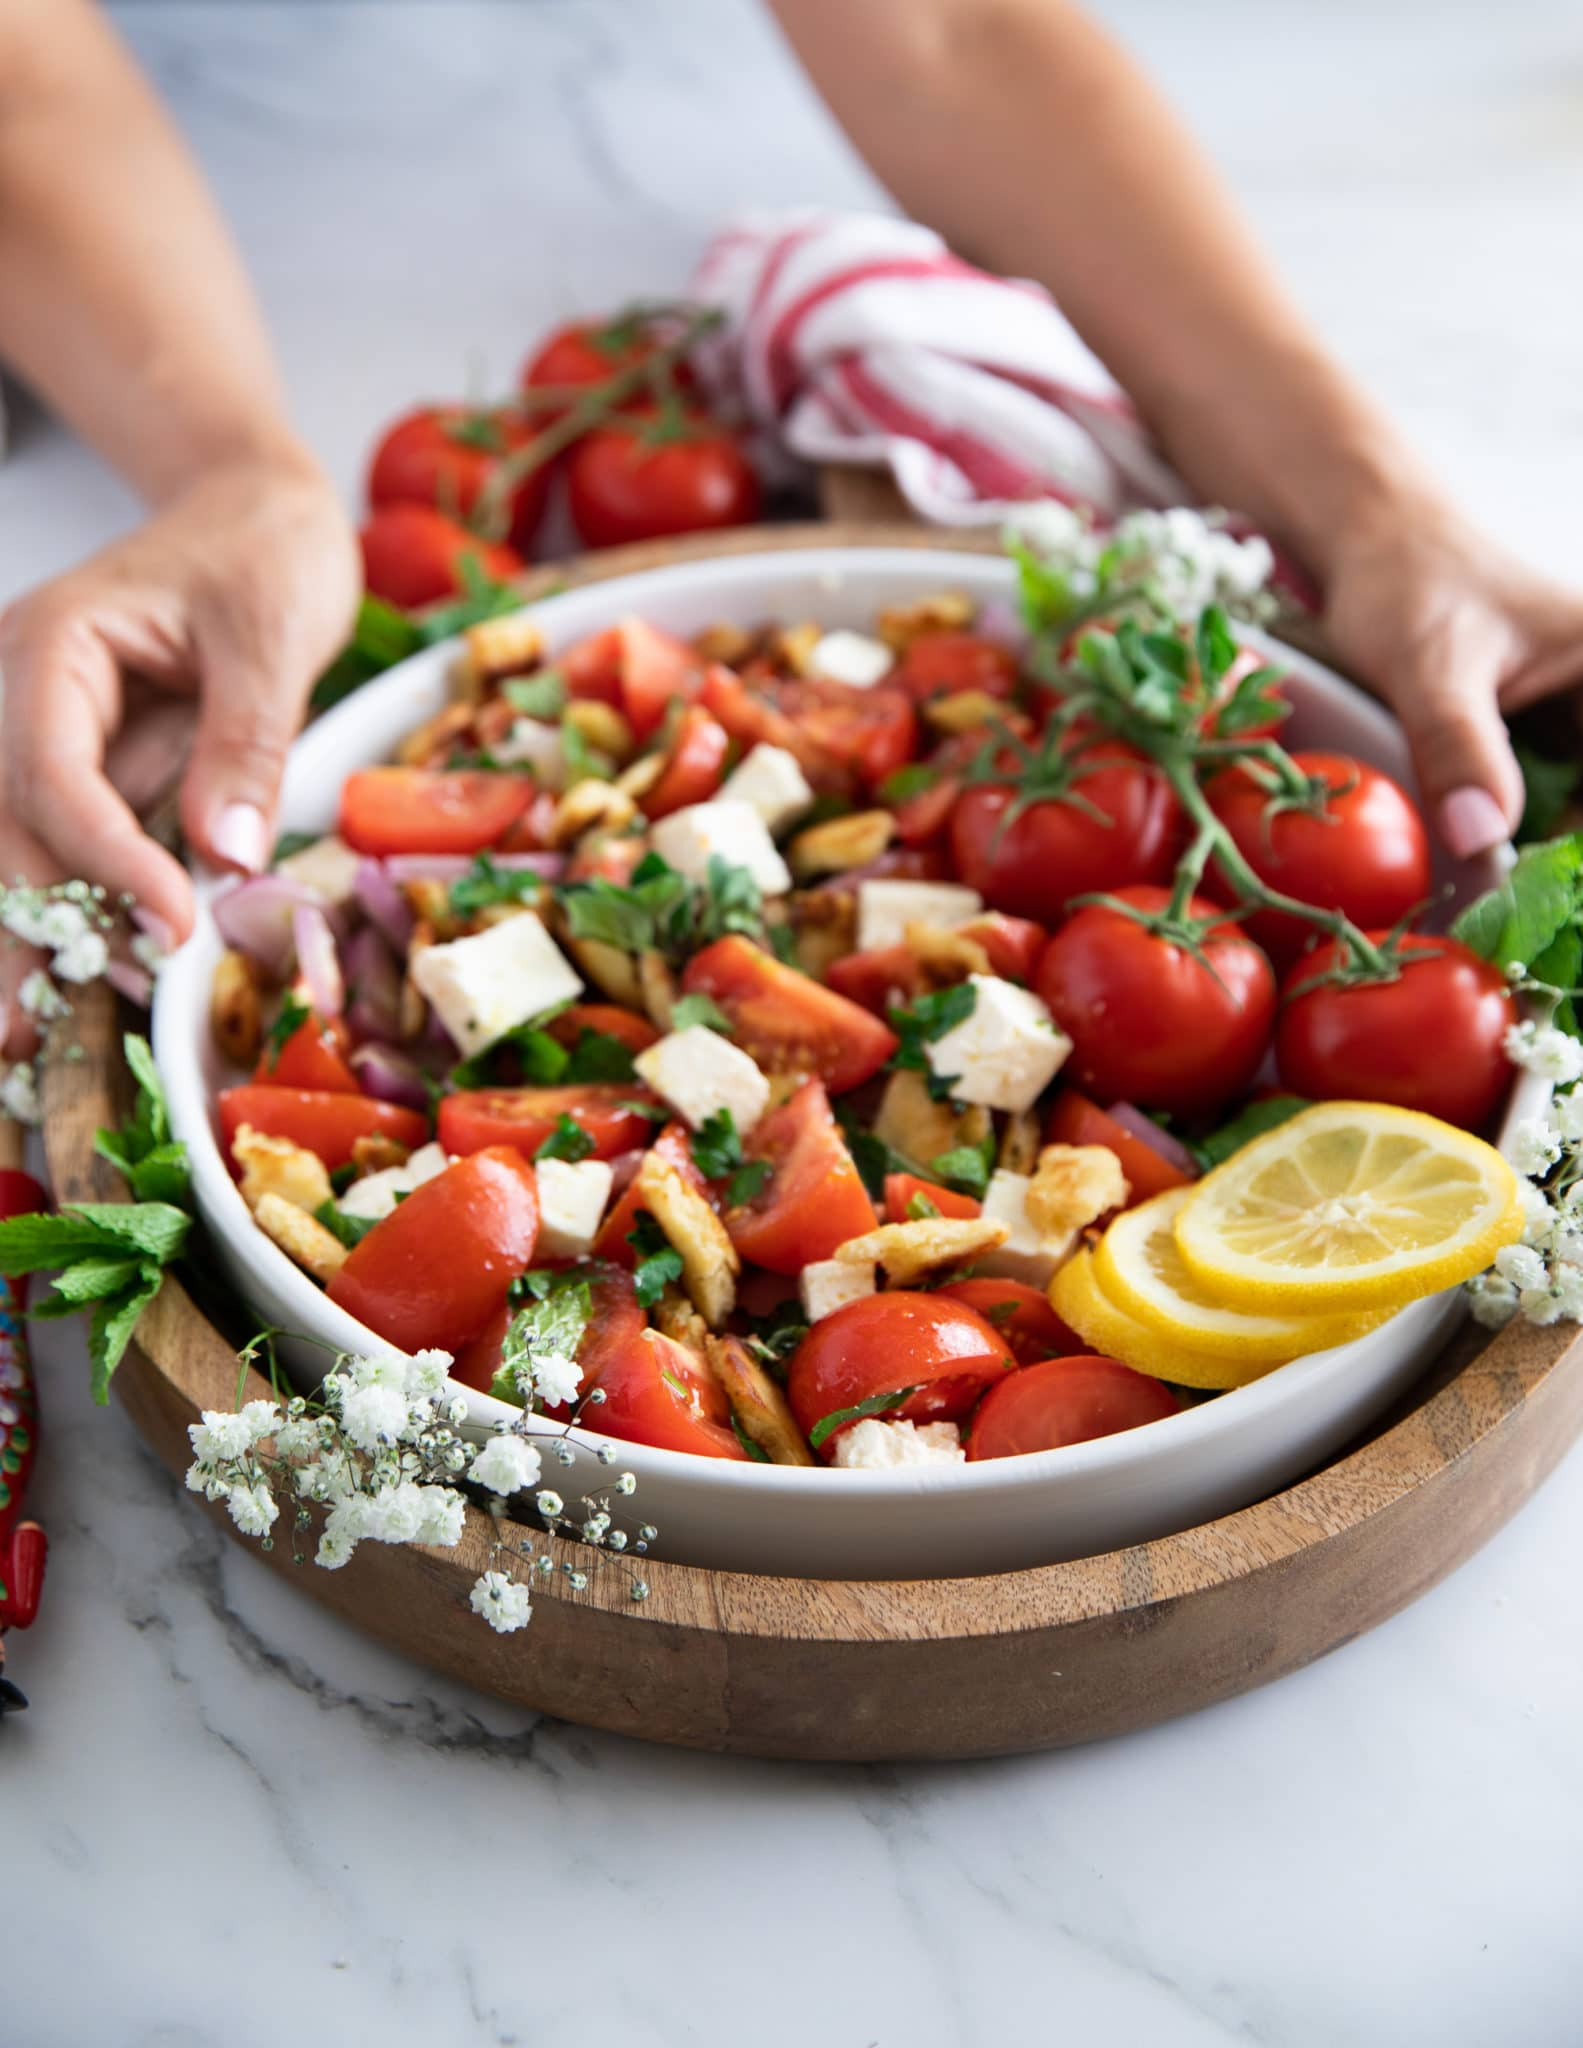 A hand holding a big plate of tomato salad surrounded by a red tea towel